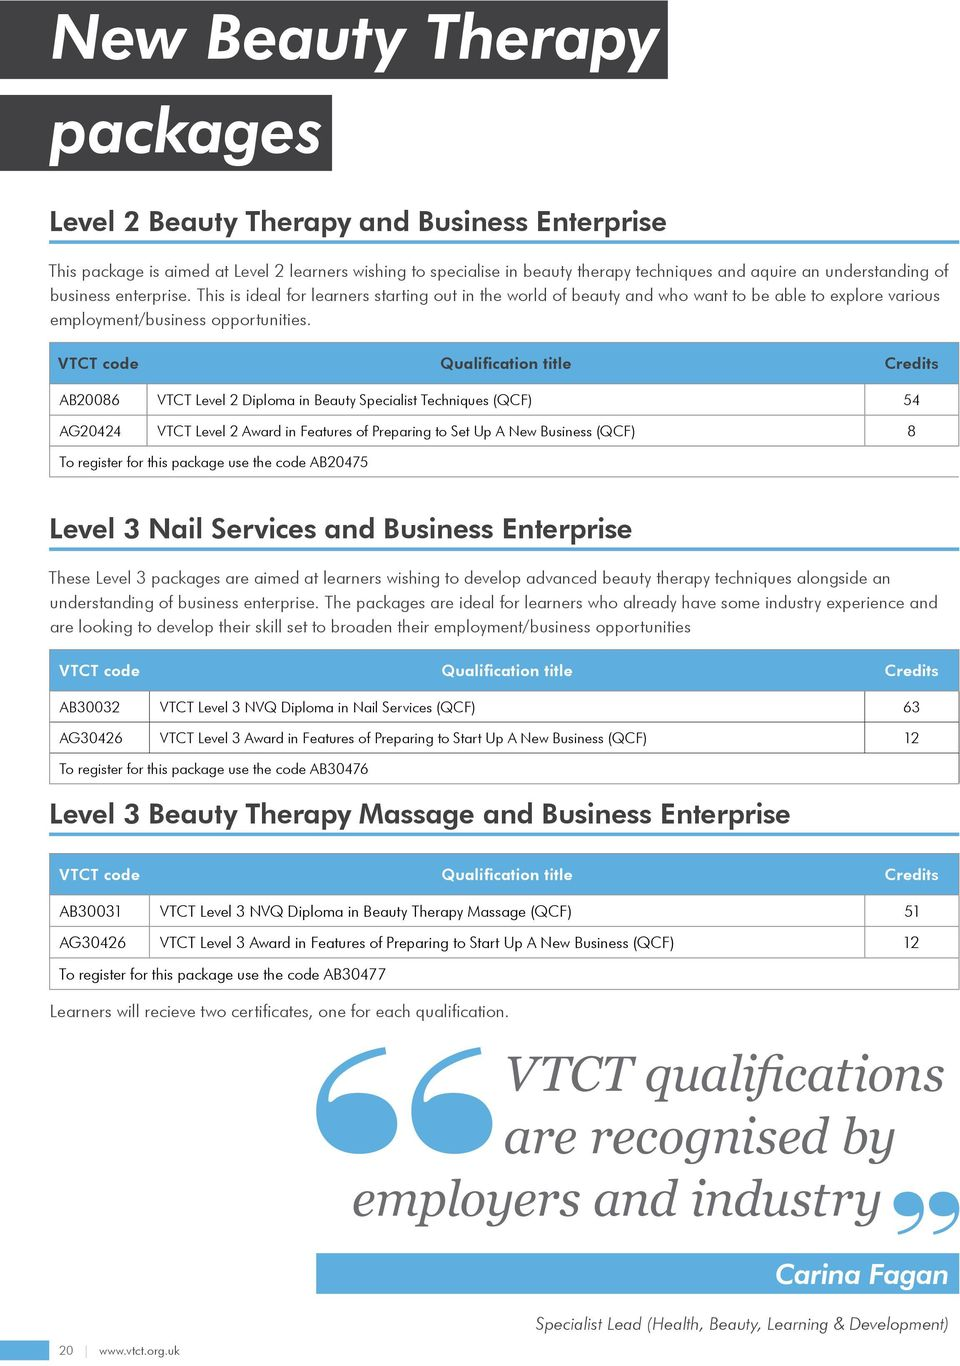 VTCT code Qualification title Credits AB20086 VTCT Level 2 Diploma in Beauty Specialist Techniques (QCF) 54 AG20424 VTCT Level 2 Award in Features of Preparing to Set Up A New Business (QCF) 8 To